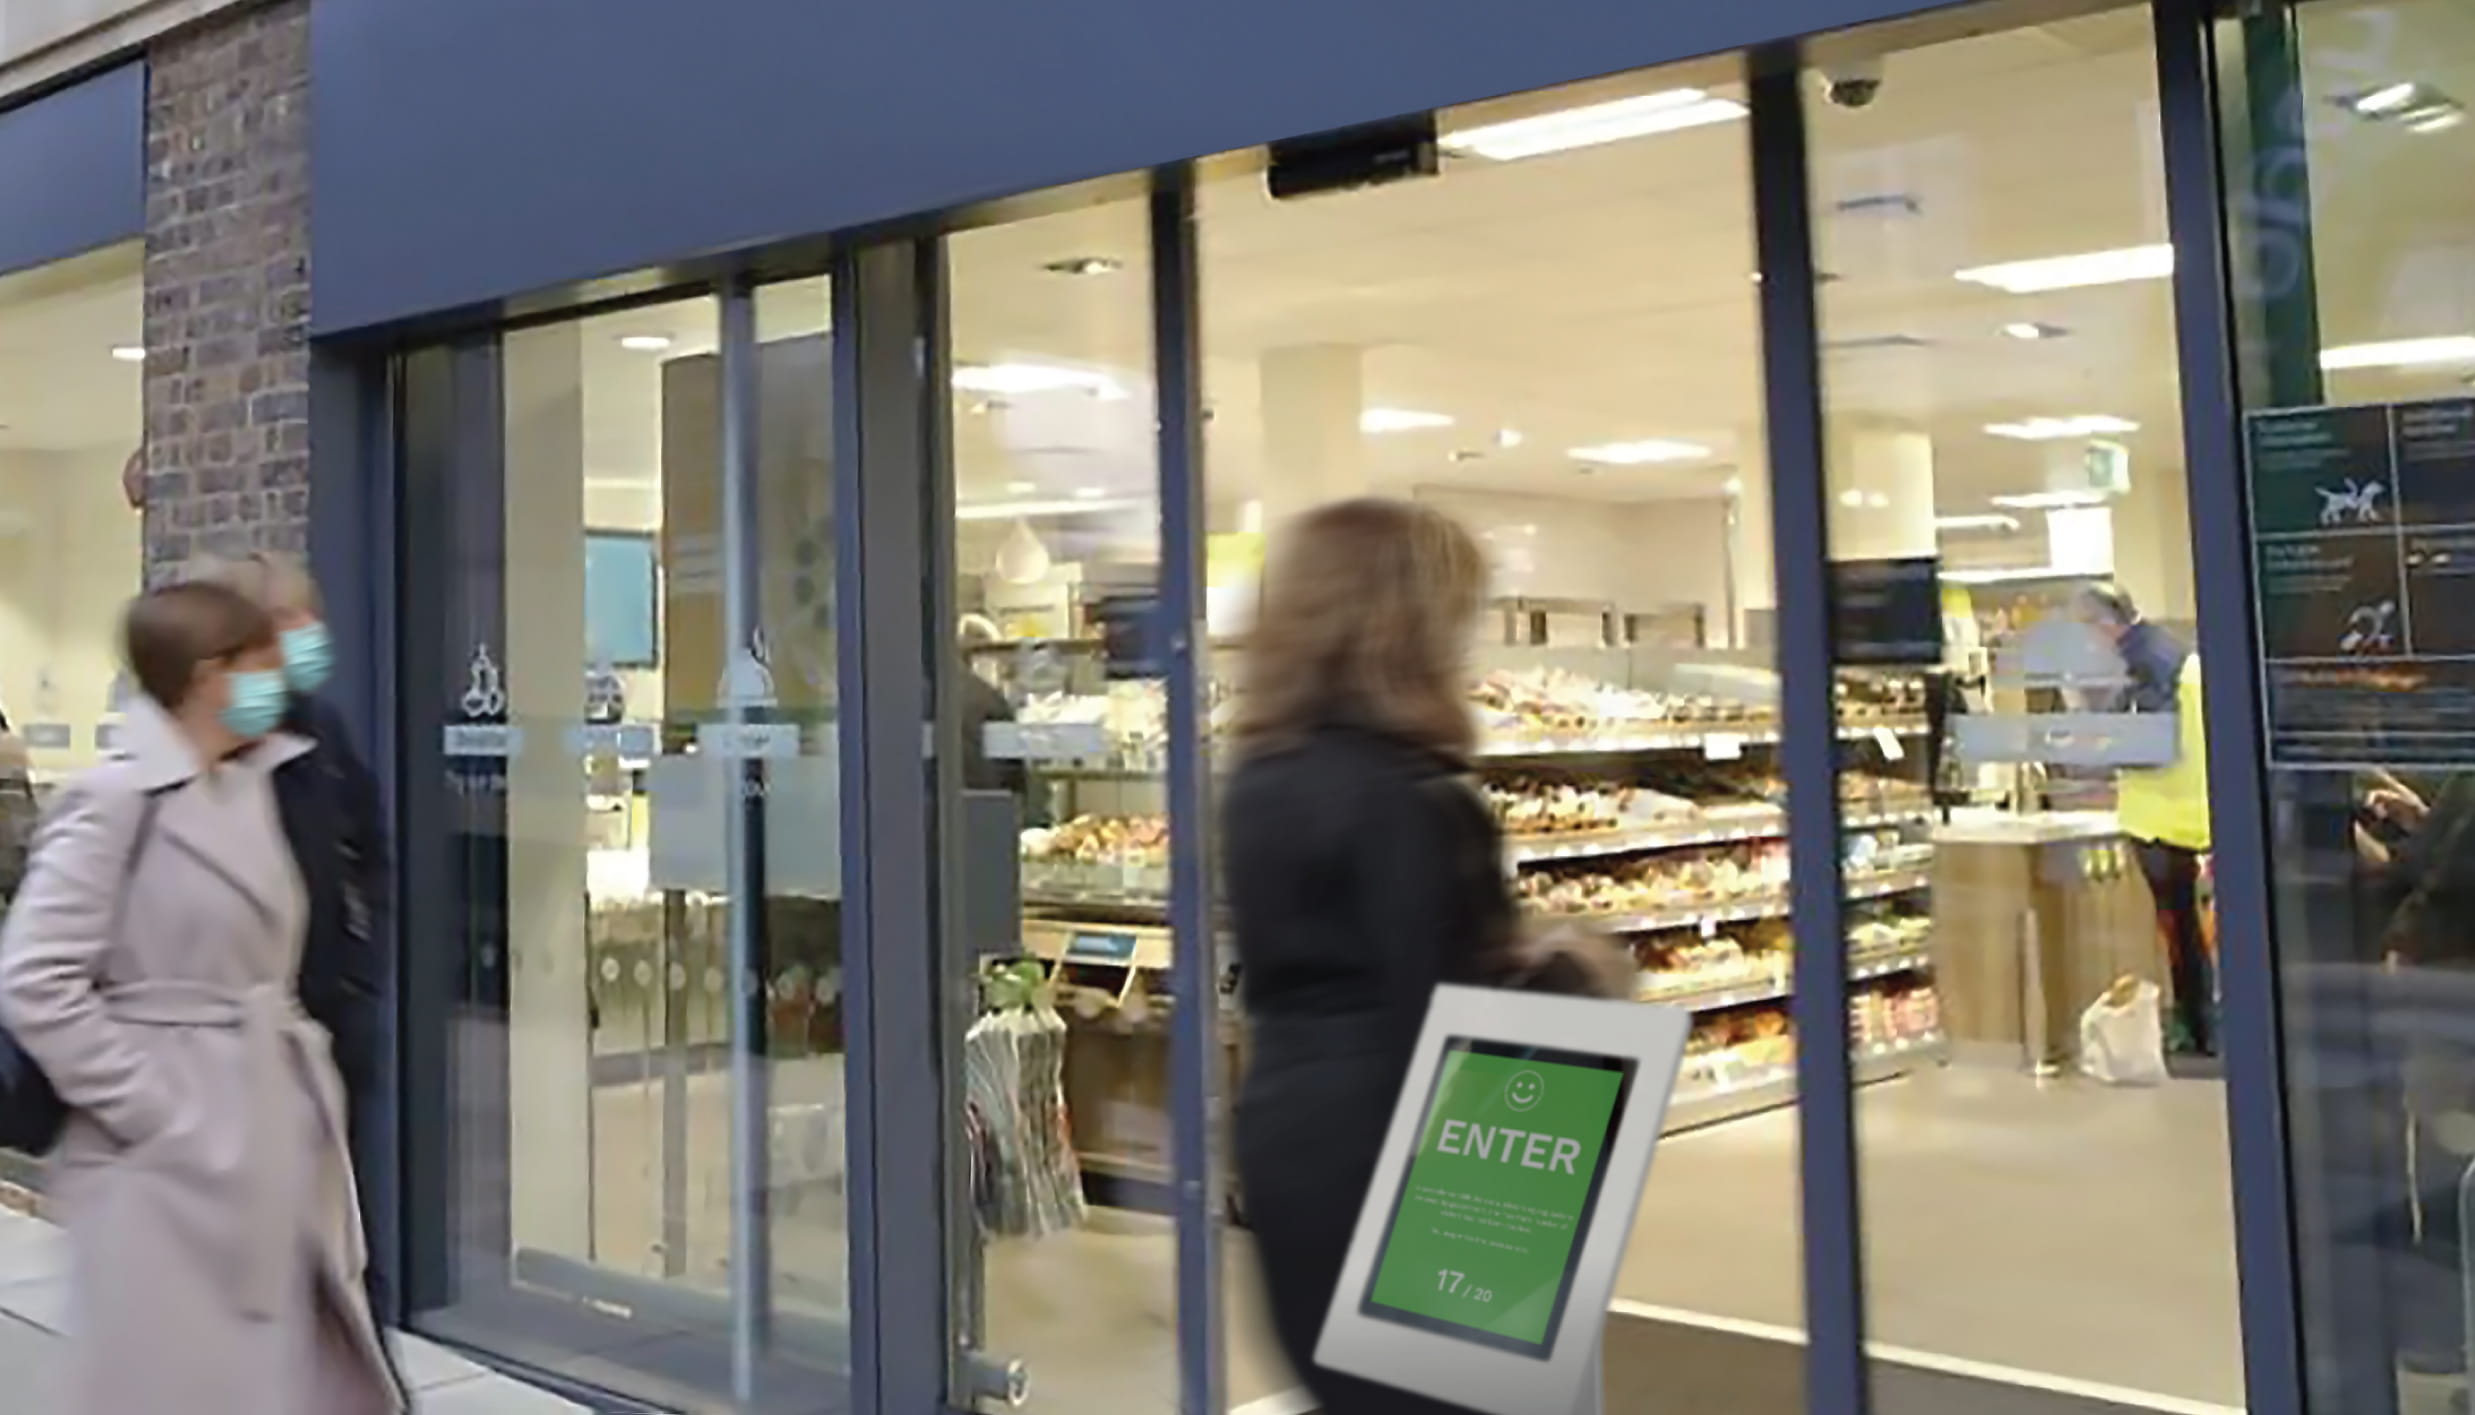 FootfallCam Covid-19 Automated Occupancy Control System - Store Entrance